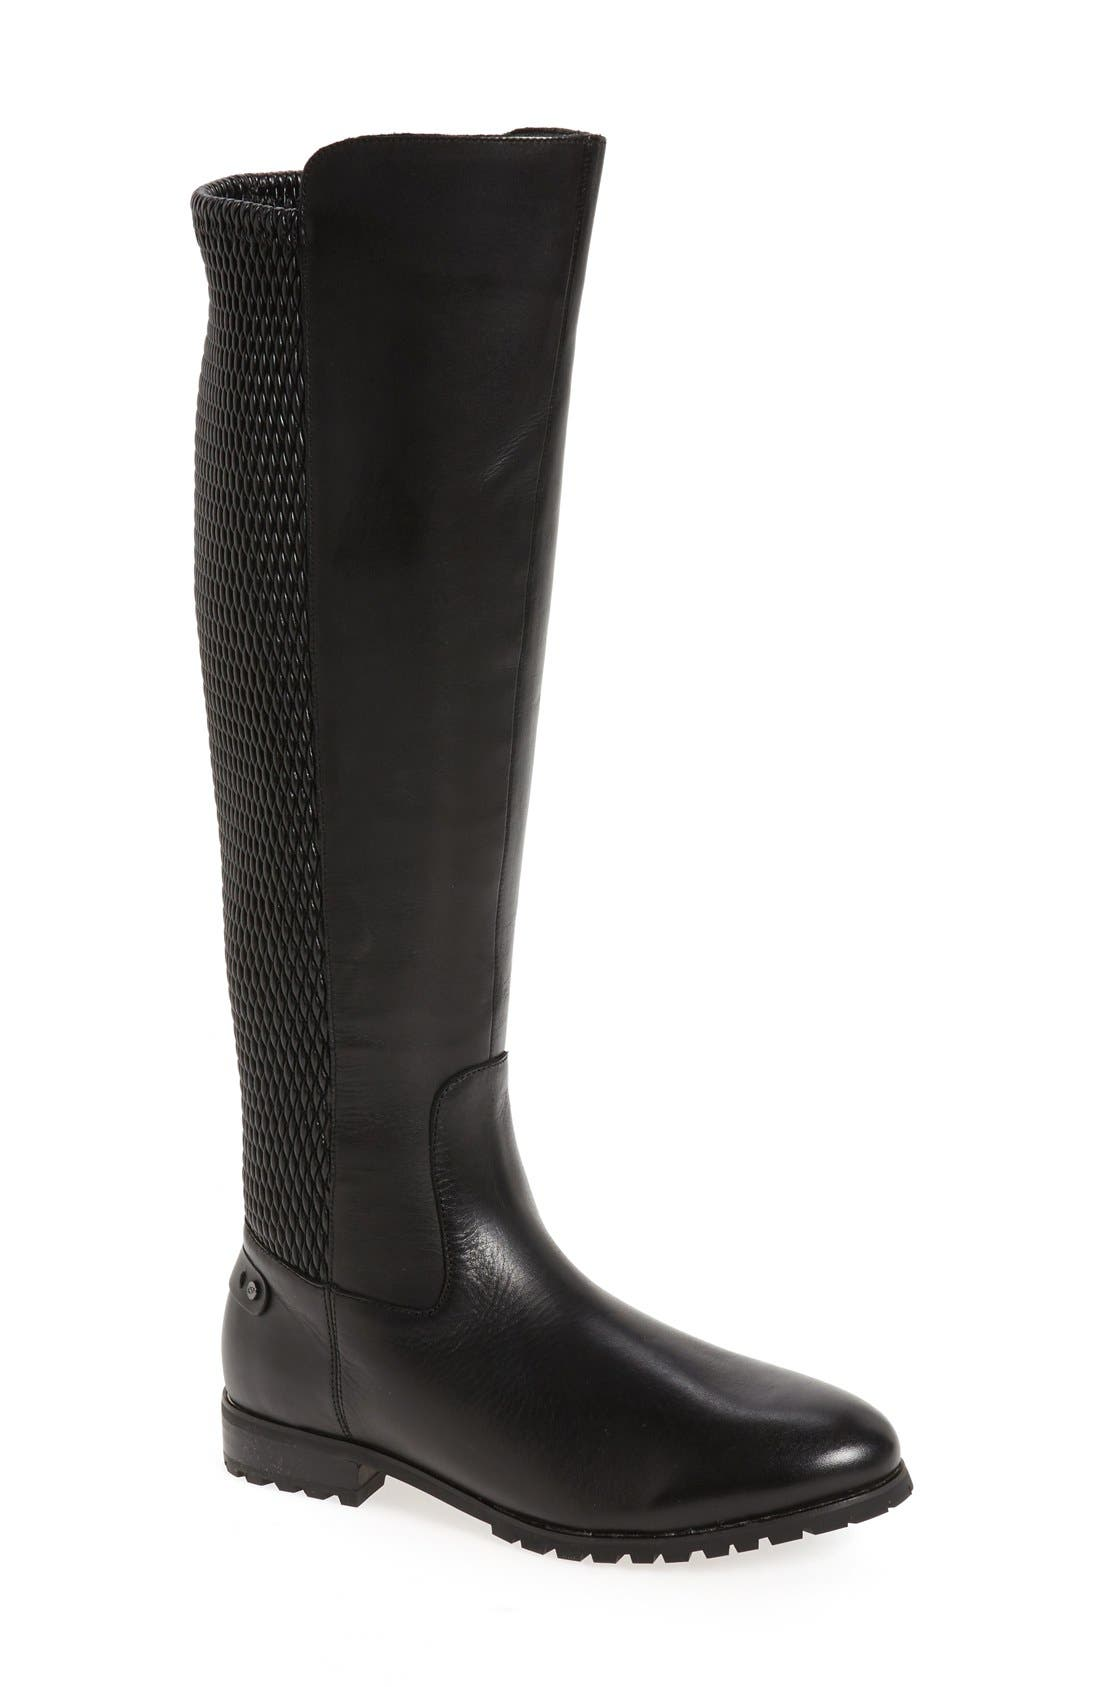 'Fabiana' Tall Boot,                             Main thumbnail 1, color,                             BLACK LEATHER